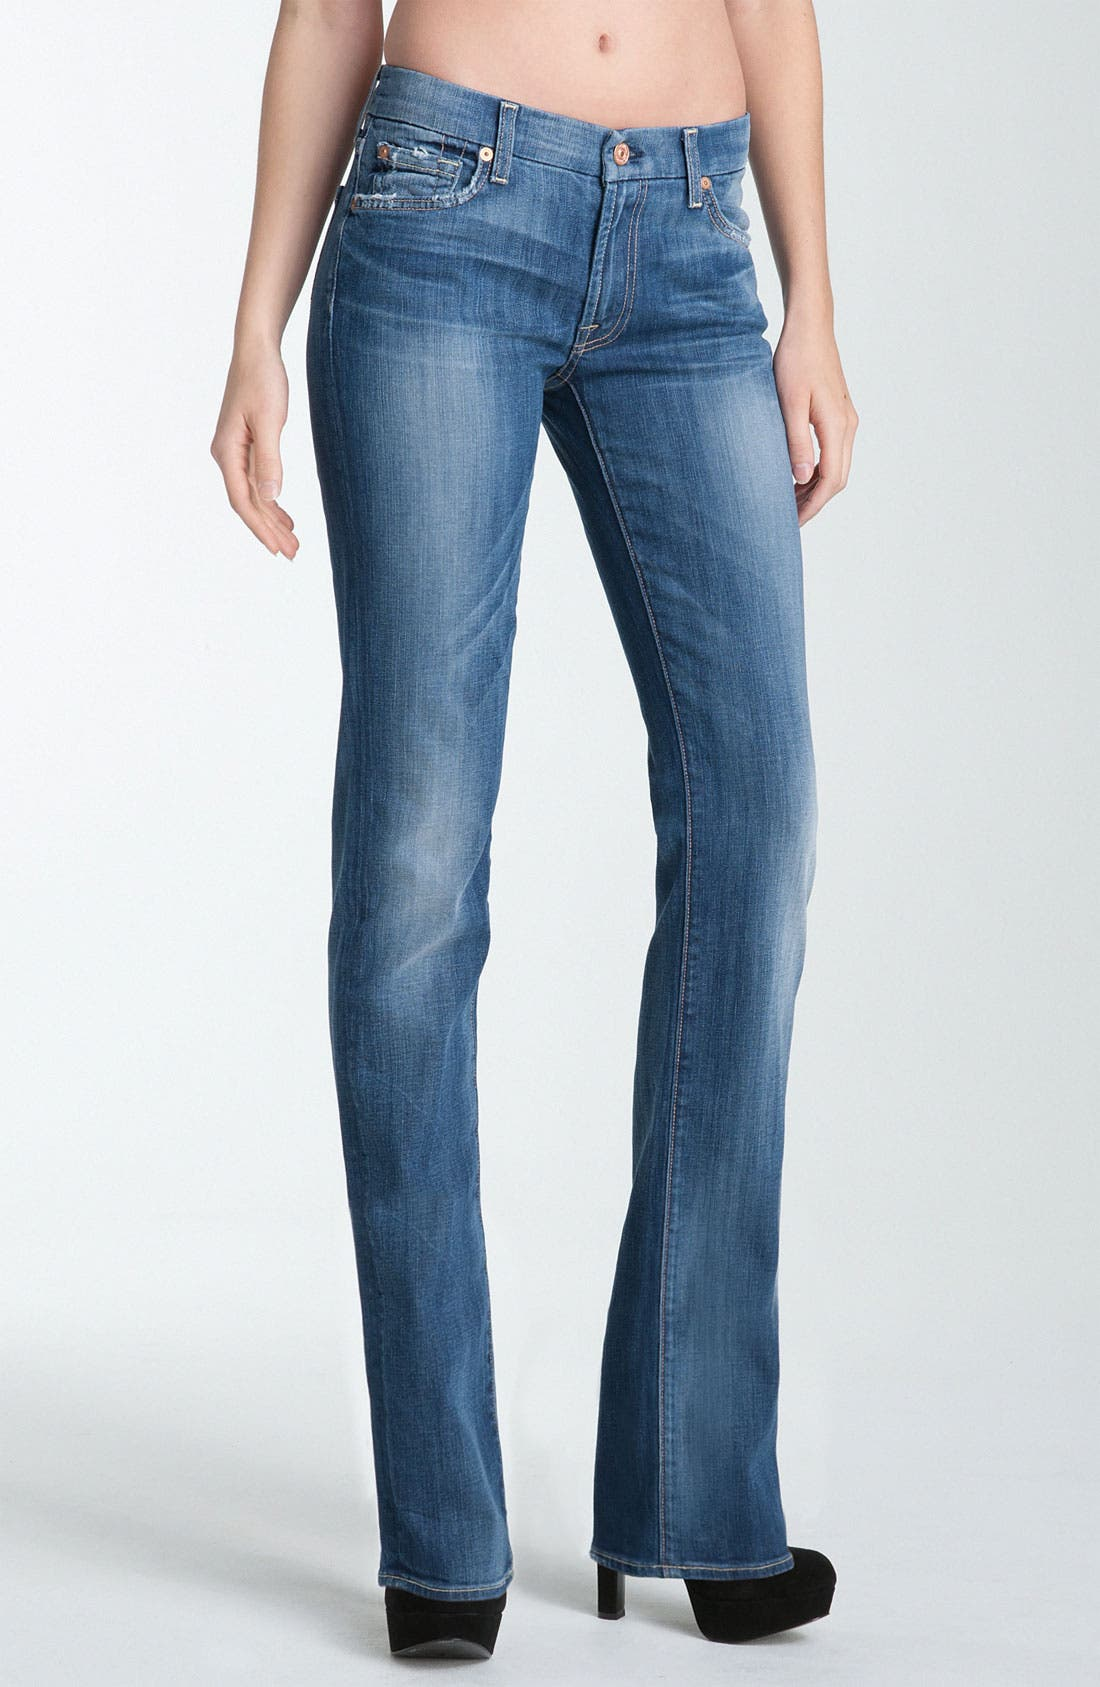 Alternate Image 1 Selected - 7 For All Mankind® 'Kimmie' Straight Leg Jeans (Medium Worn)